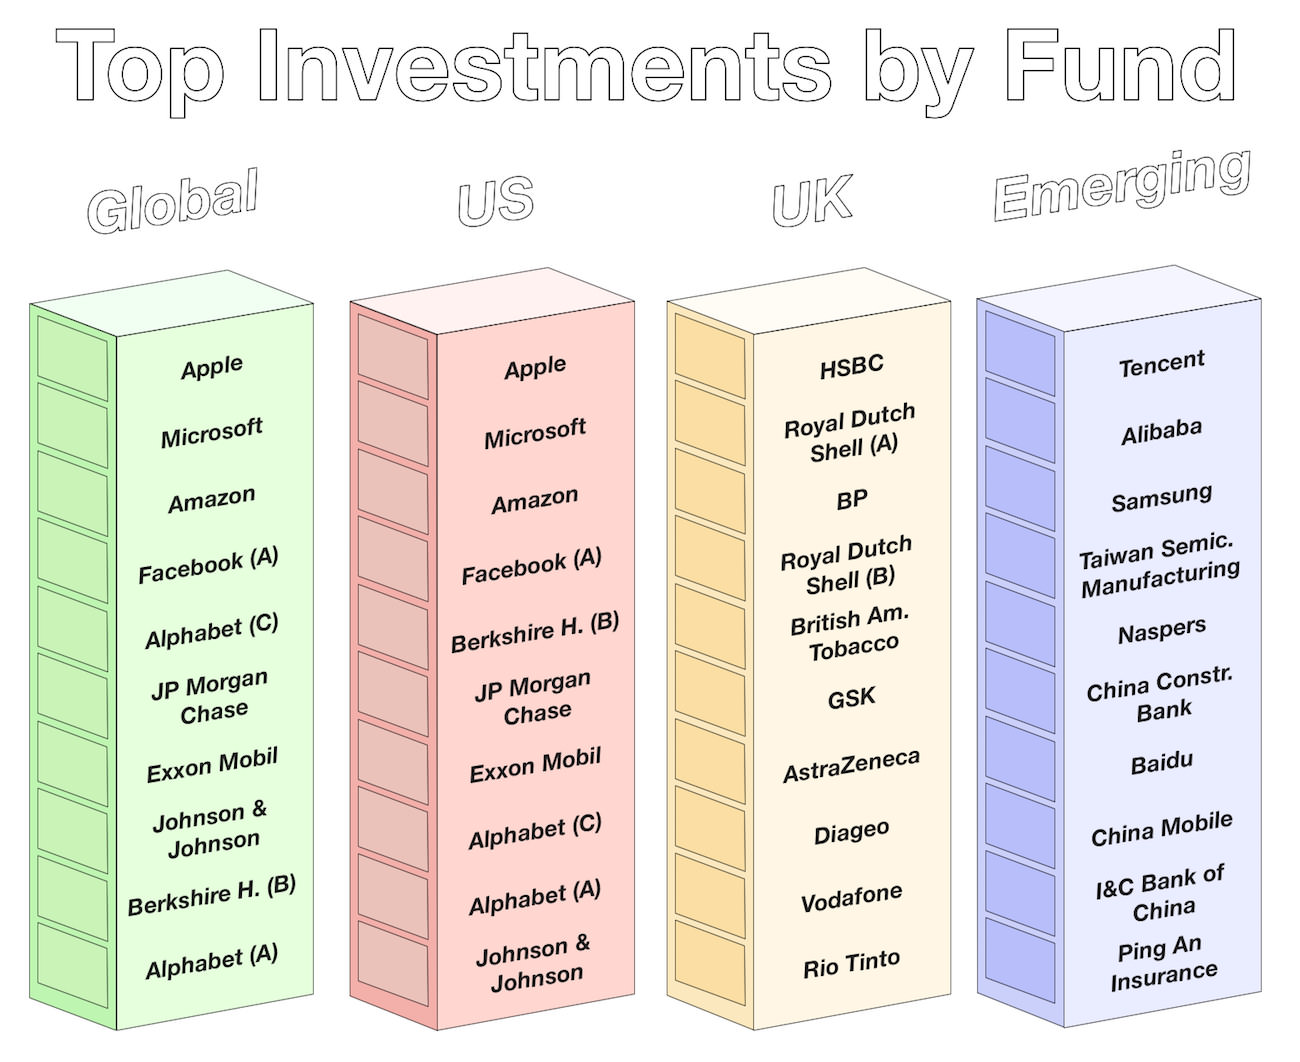 June 2018 - Top Investments by Fund